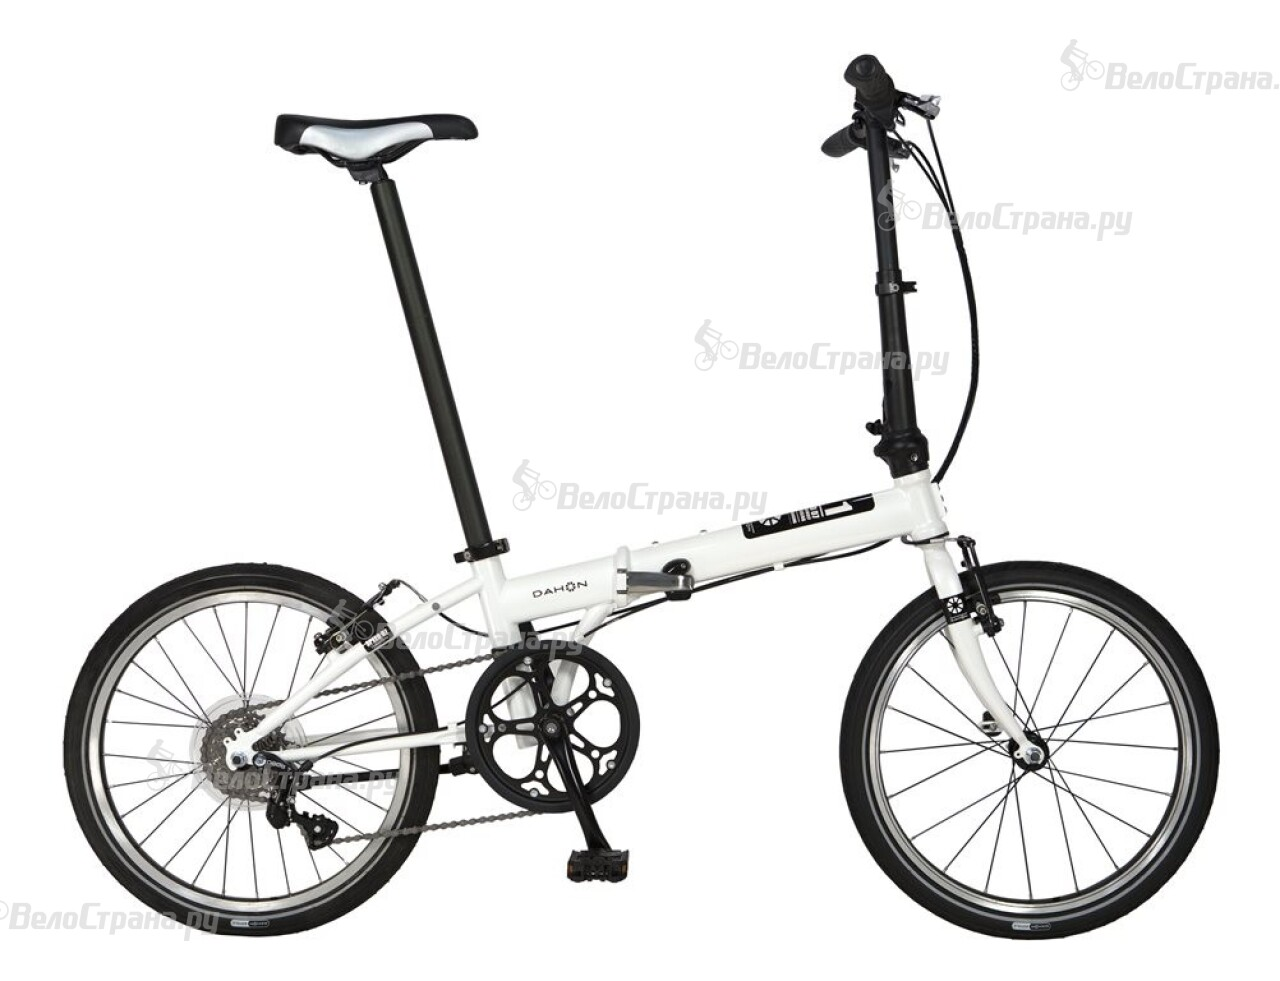 Велосипед Dahon Speed D7 (2014) велосипед dahon speed d7 2016